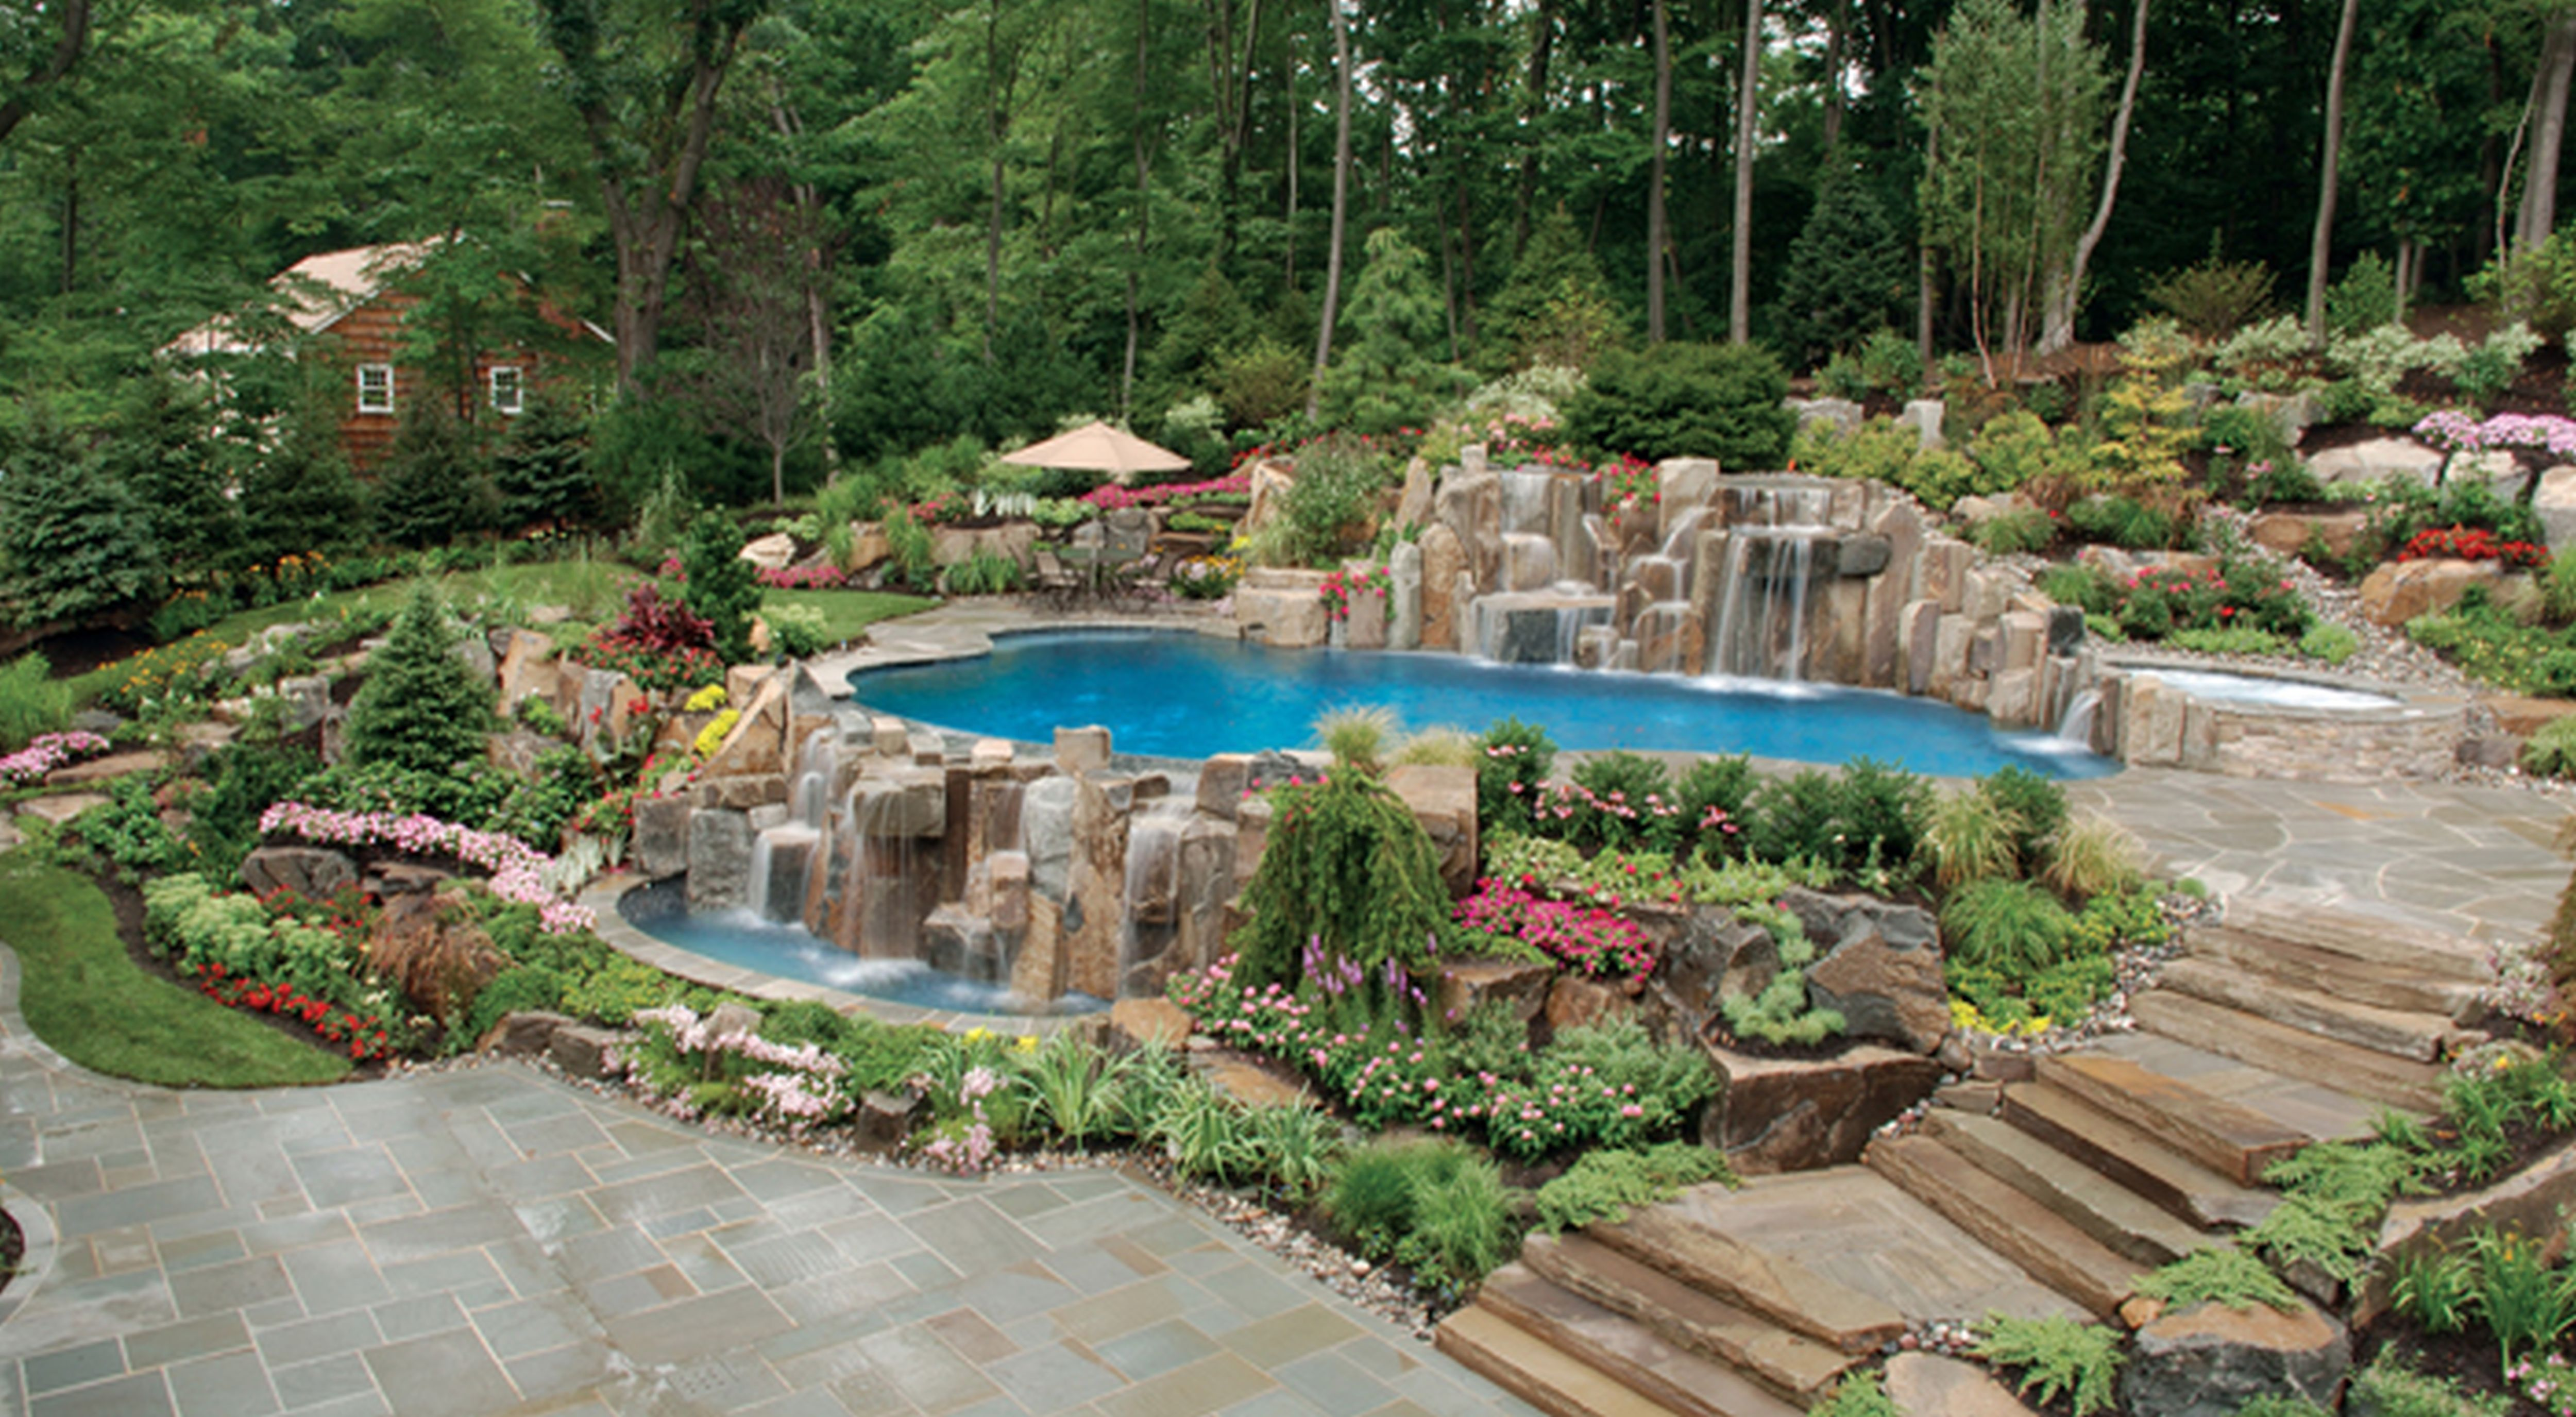 landscaping backyard rustic style backyard pool party ideas - Pool Landscaping